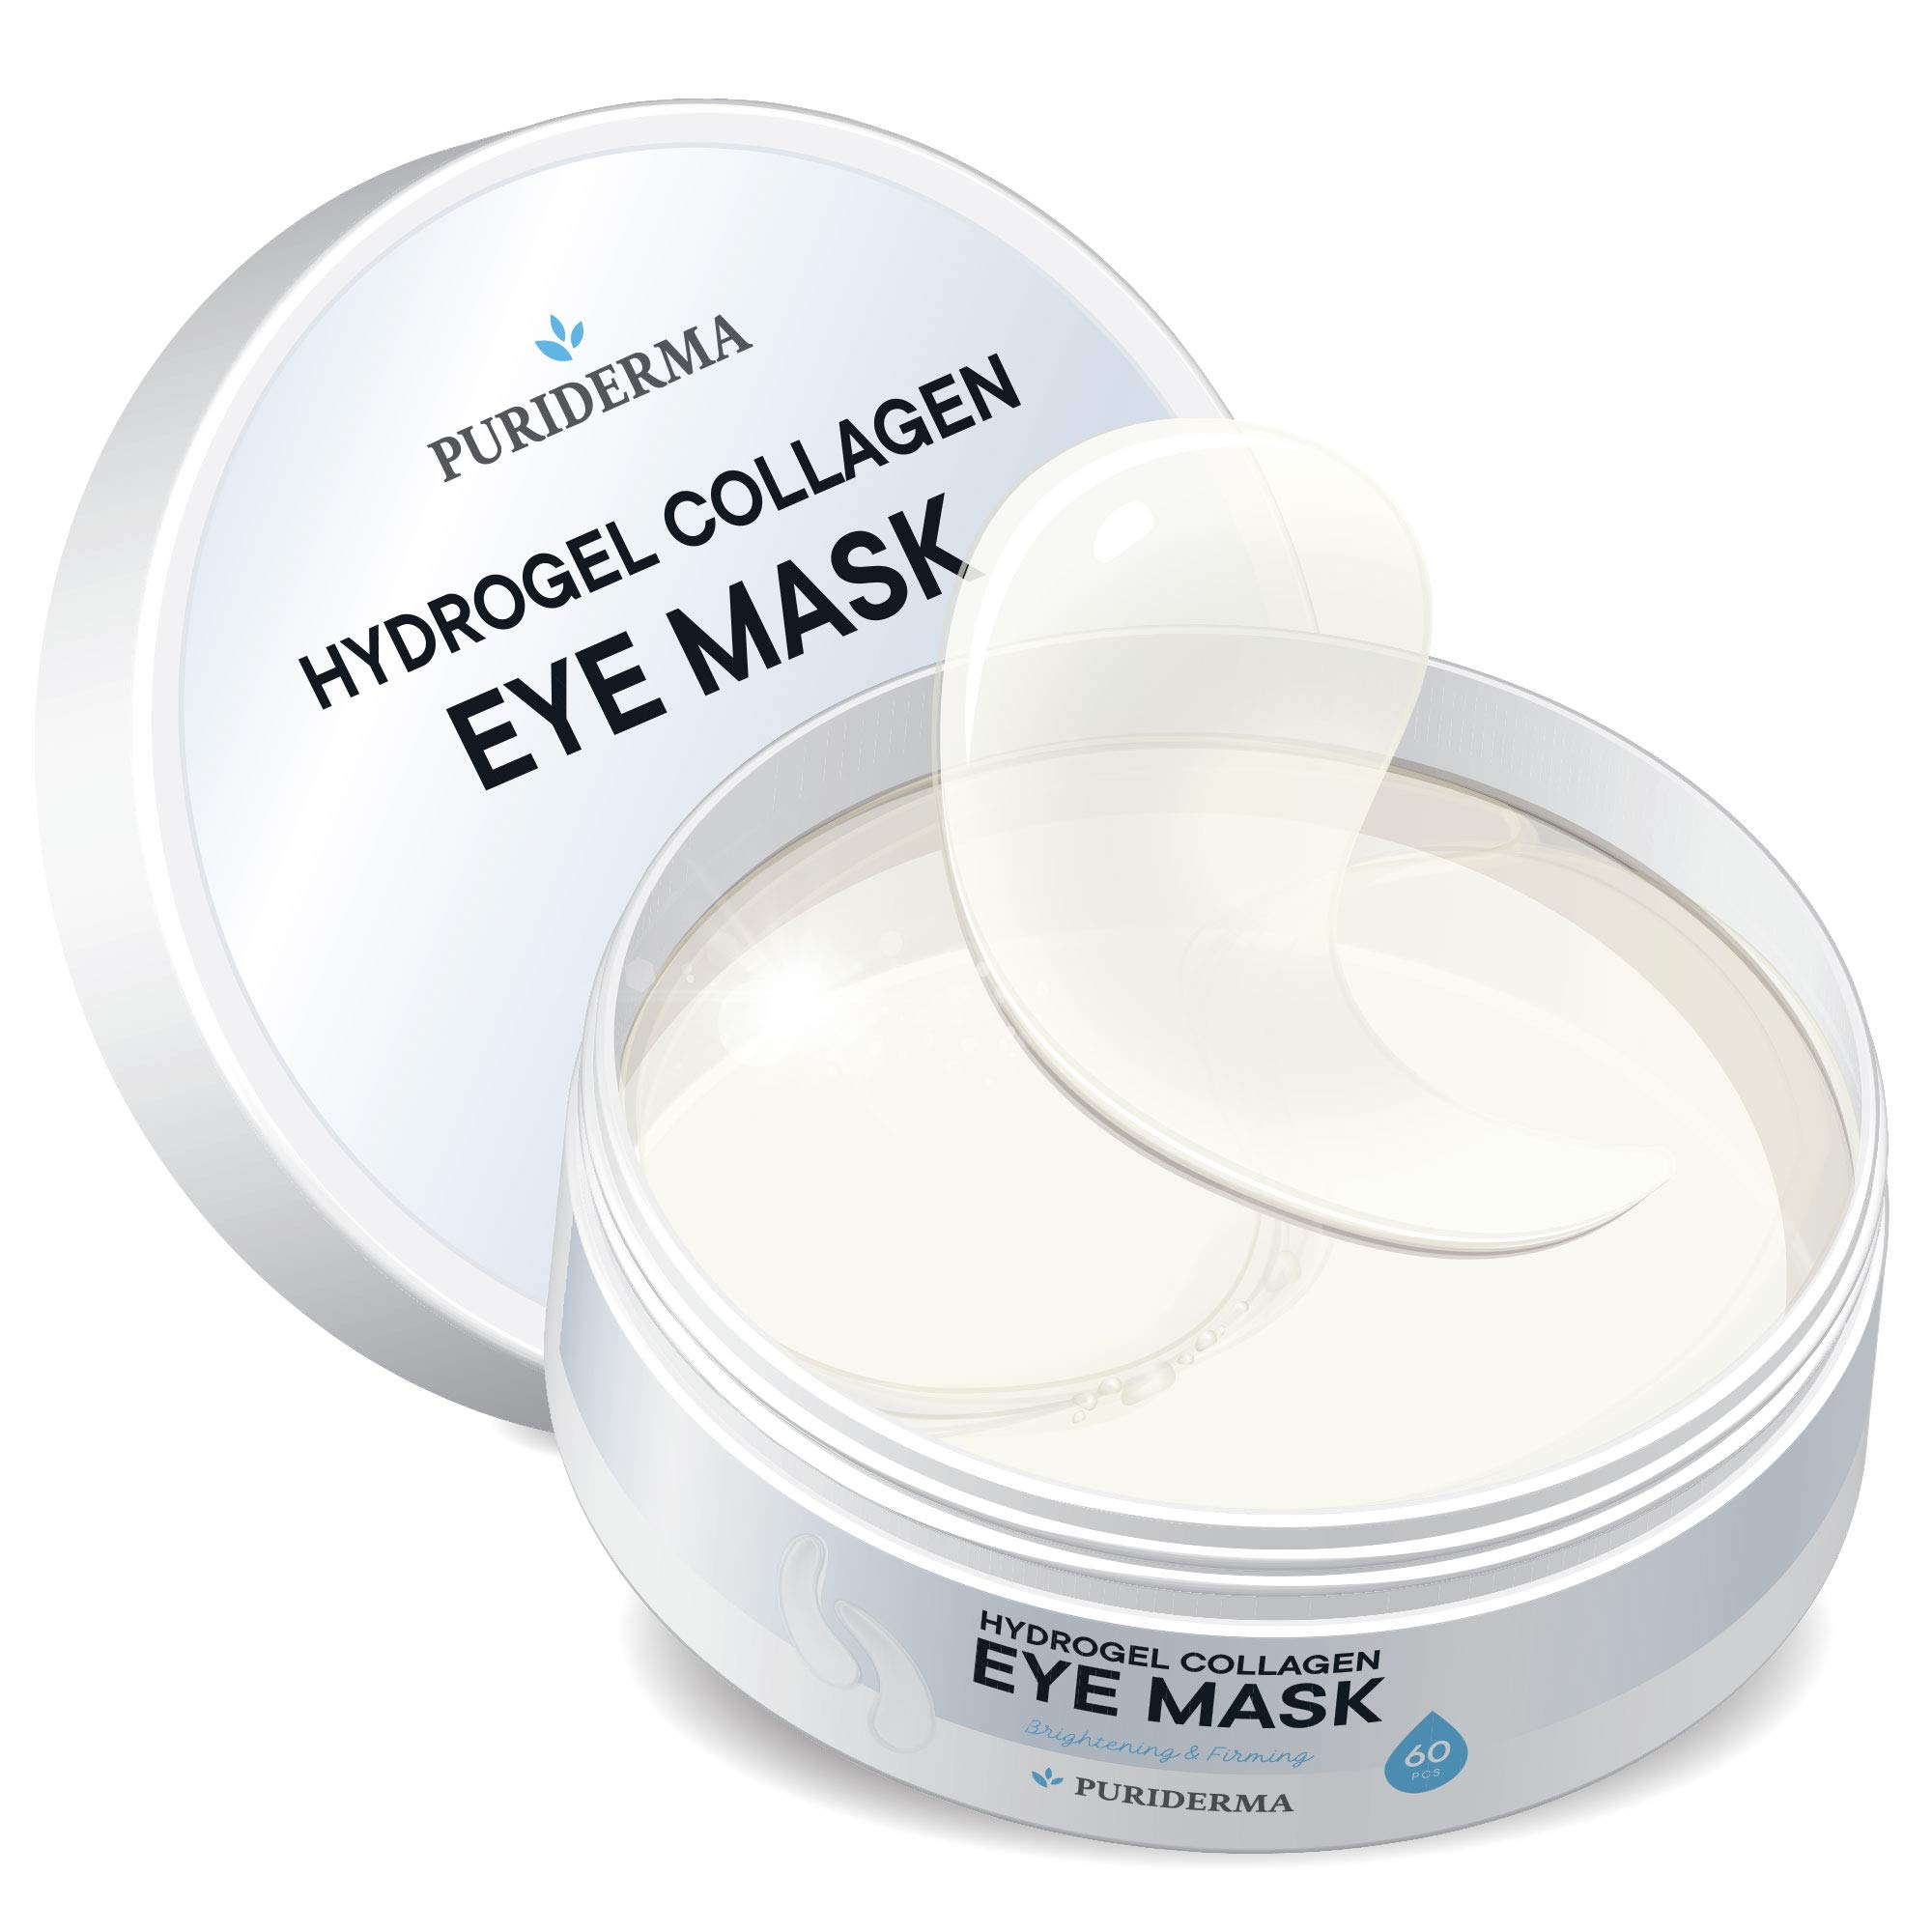 Hydrogel Collagen Eye Mask by Puriderma - Collagen Anti-Aging Under Eye Patches, Reduce Wrinkles, Fine Lines, Puffiness, Crow's Feet, Dark Circles by Puriderma